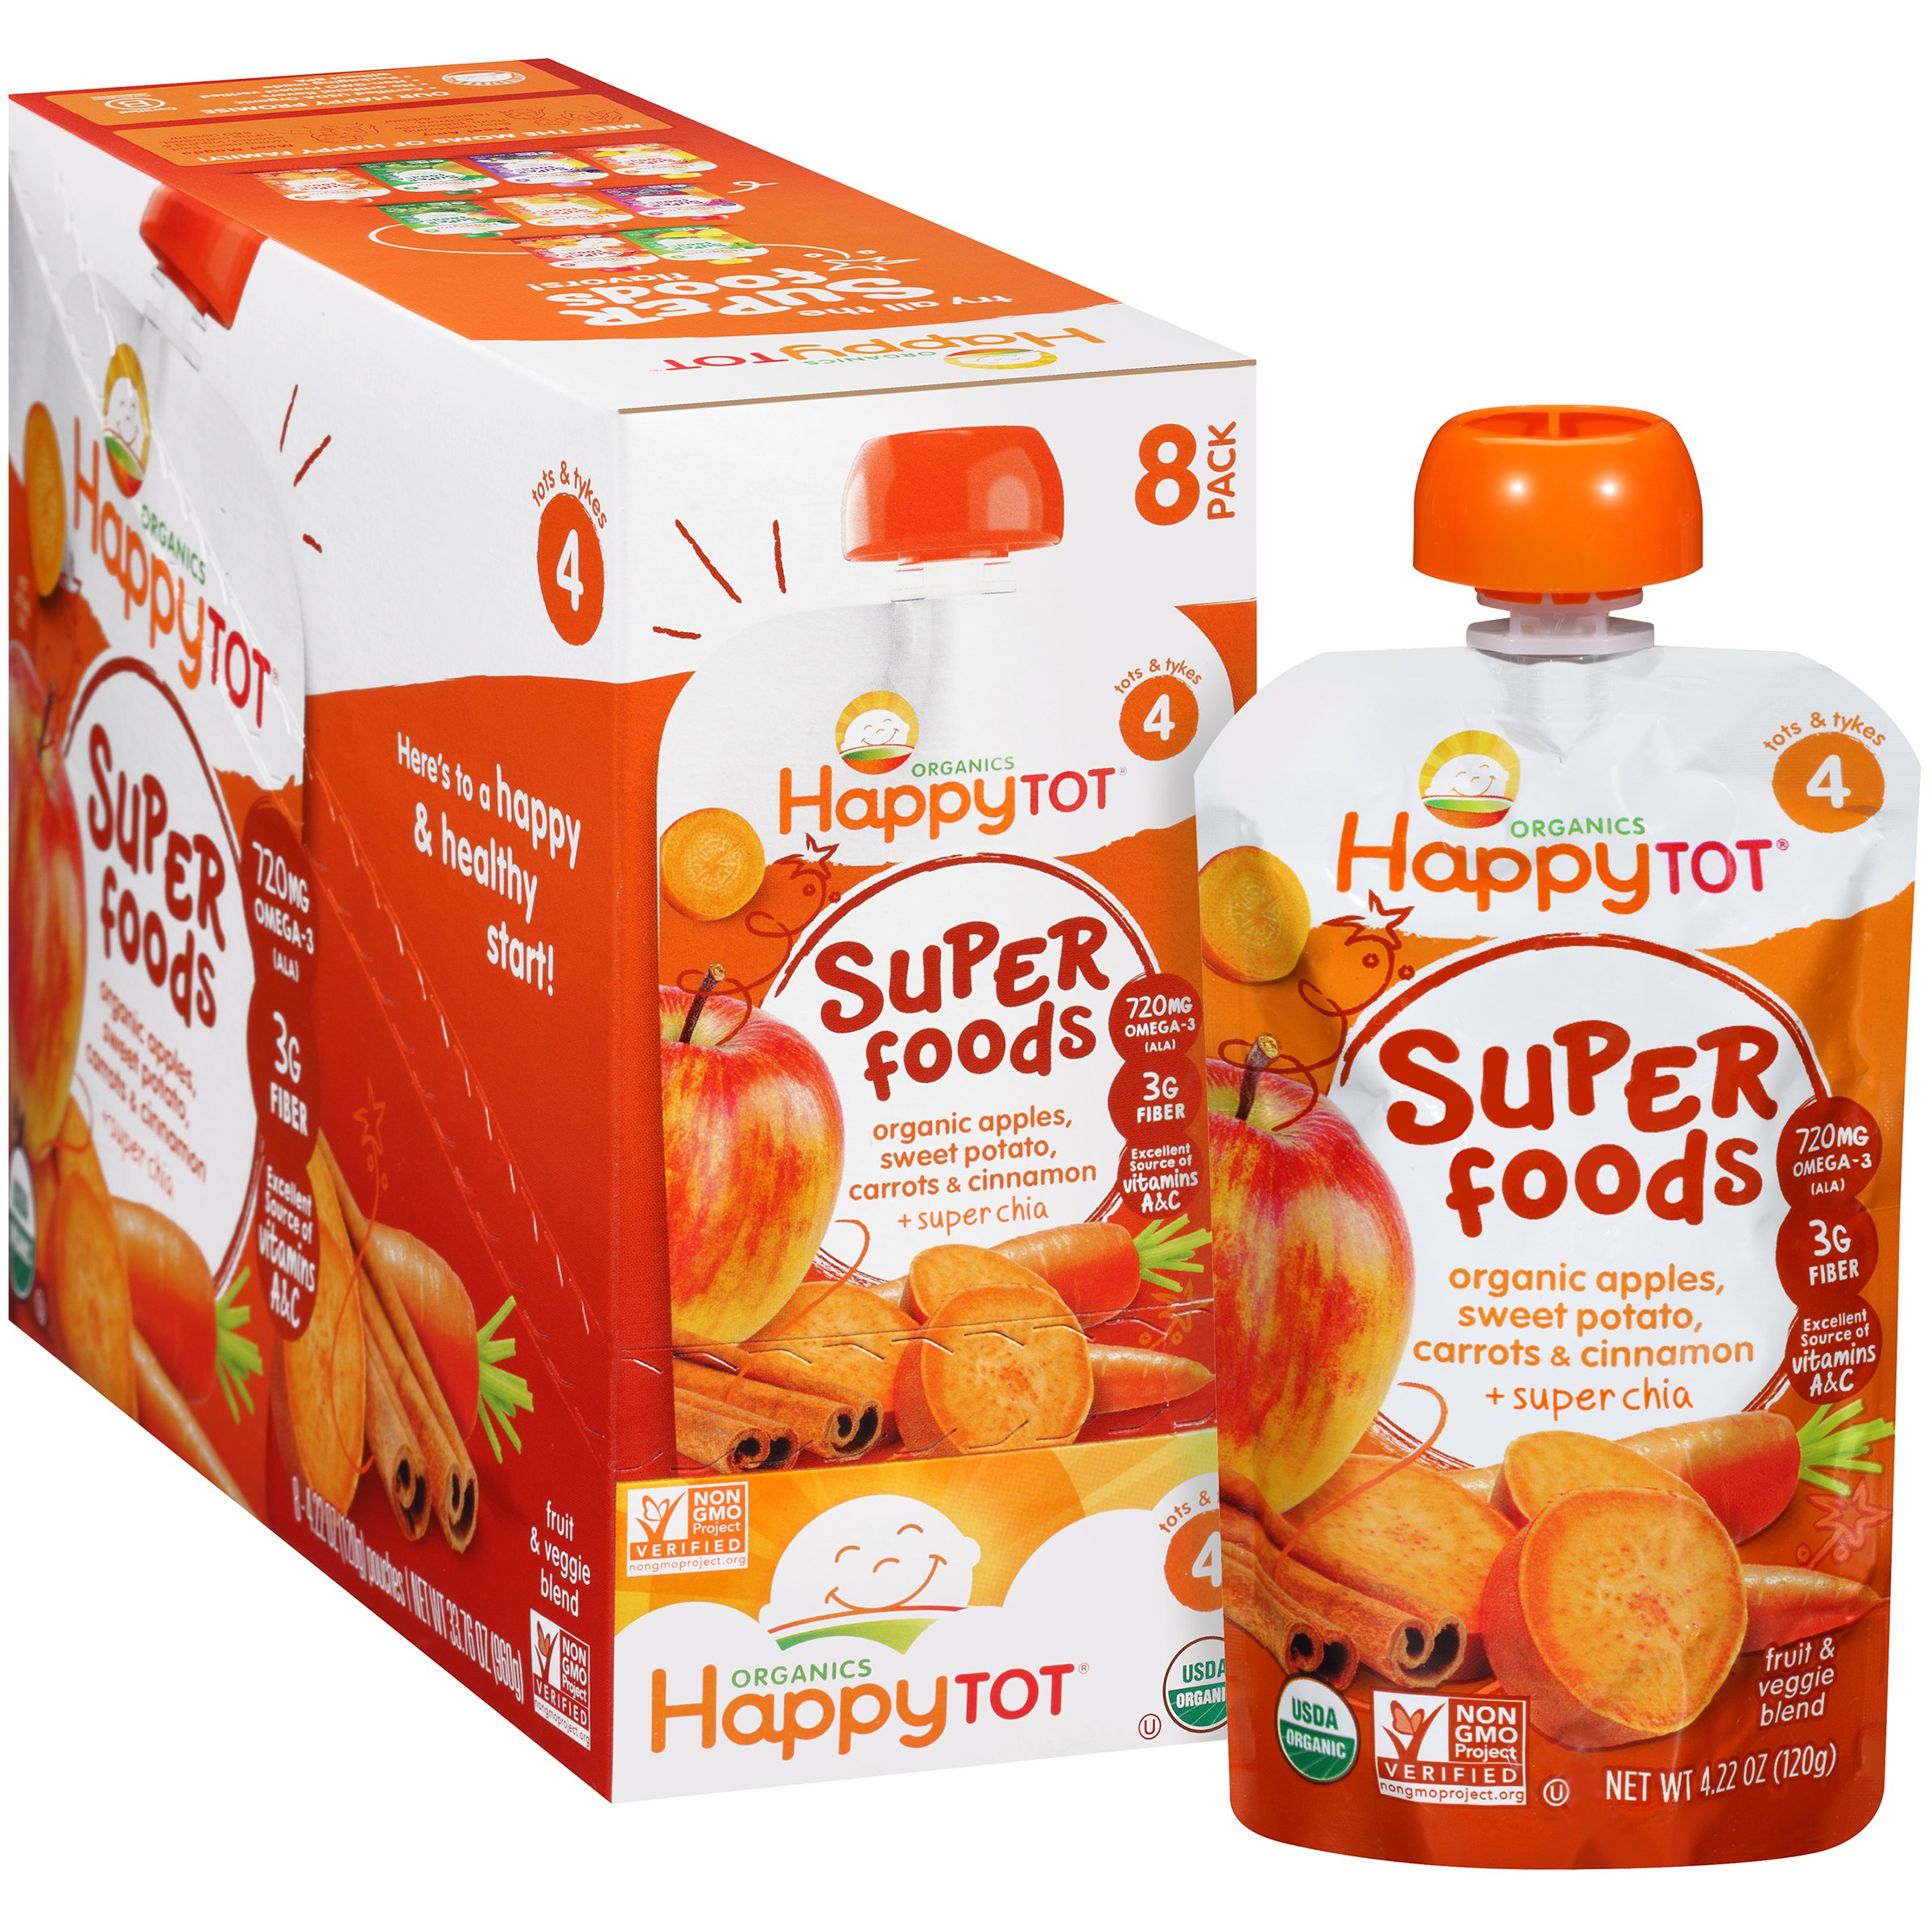 (8 Pack) Happy Tot Organics Super Foods Apples, Sweet Potato, Carrots & Cinnamon + Super Chia Stage 2 Baby Food, 4.22 oz